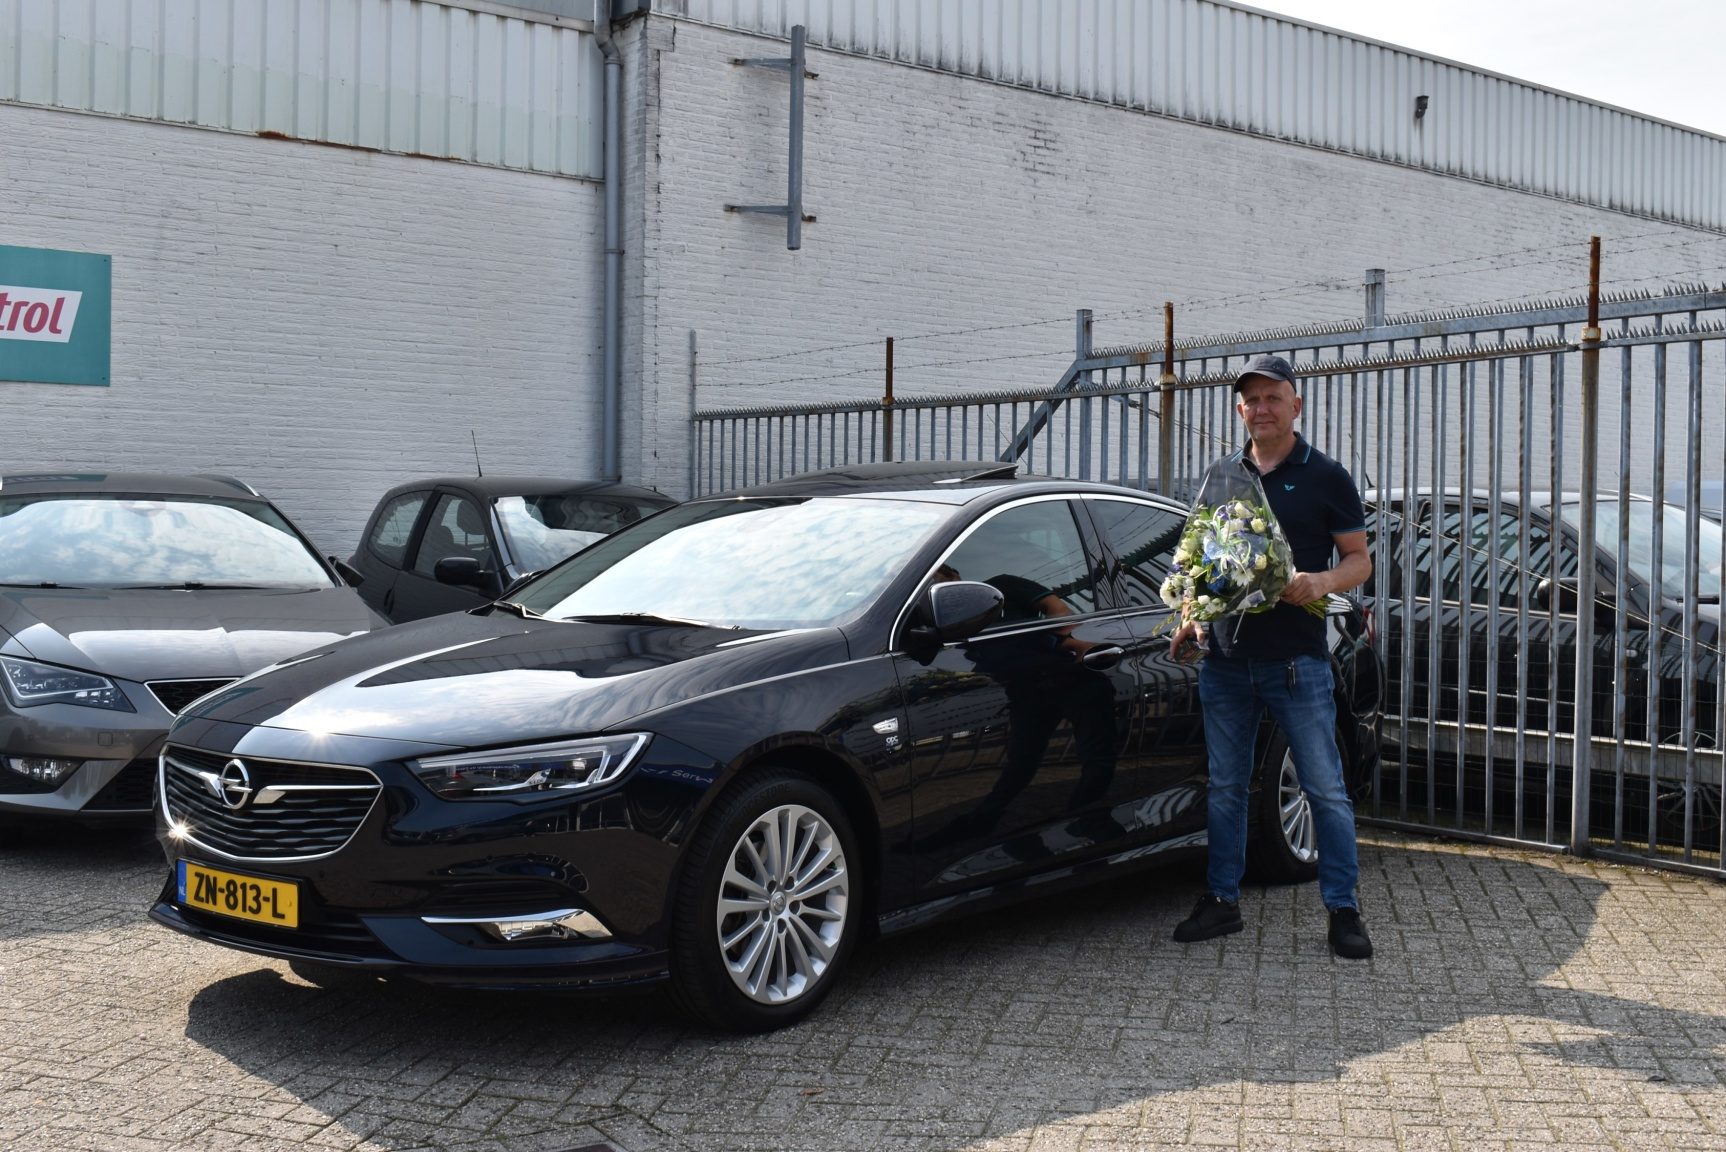 Aflevering Opel Insignia automaat-2021-08-24 08:43:08